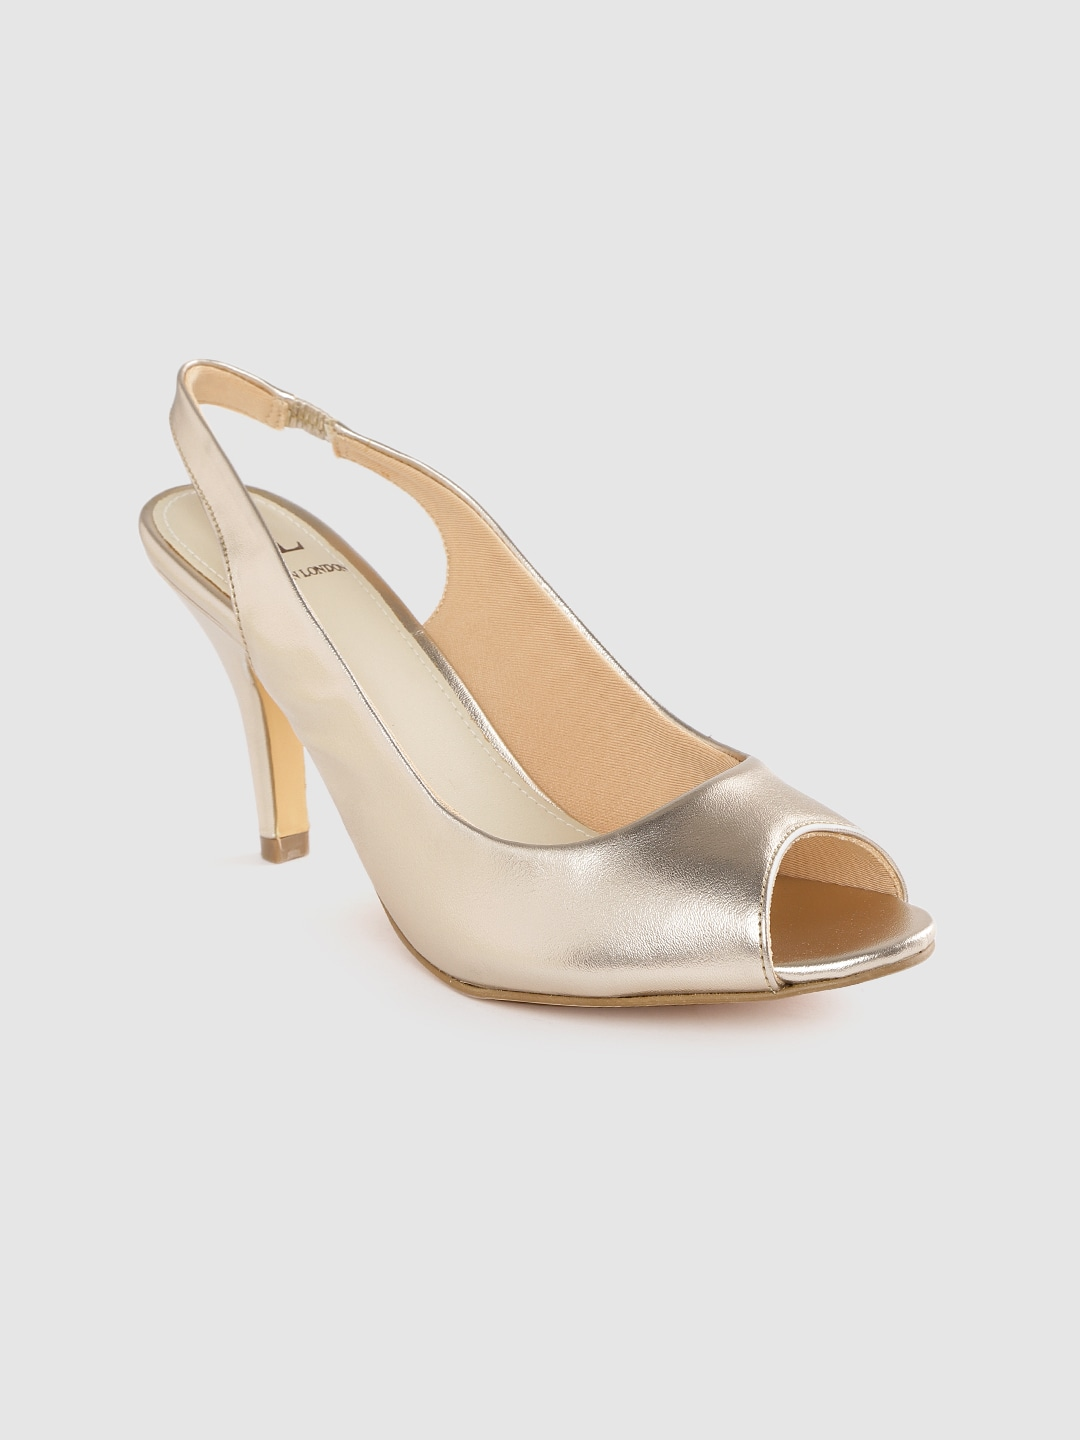 Gold-Toned Solid Peep Toes